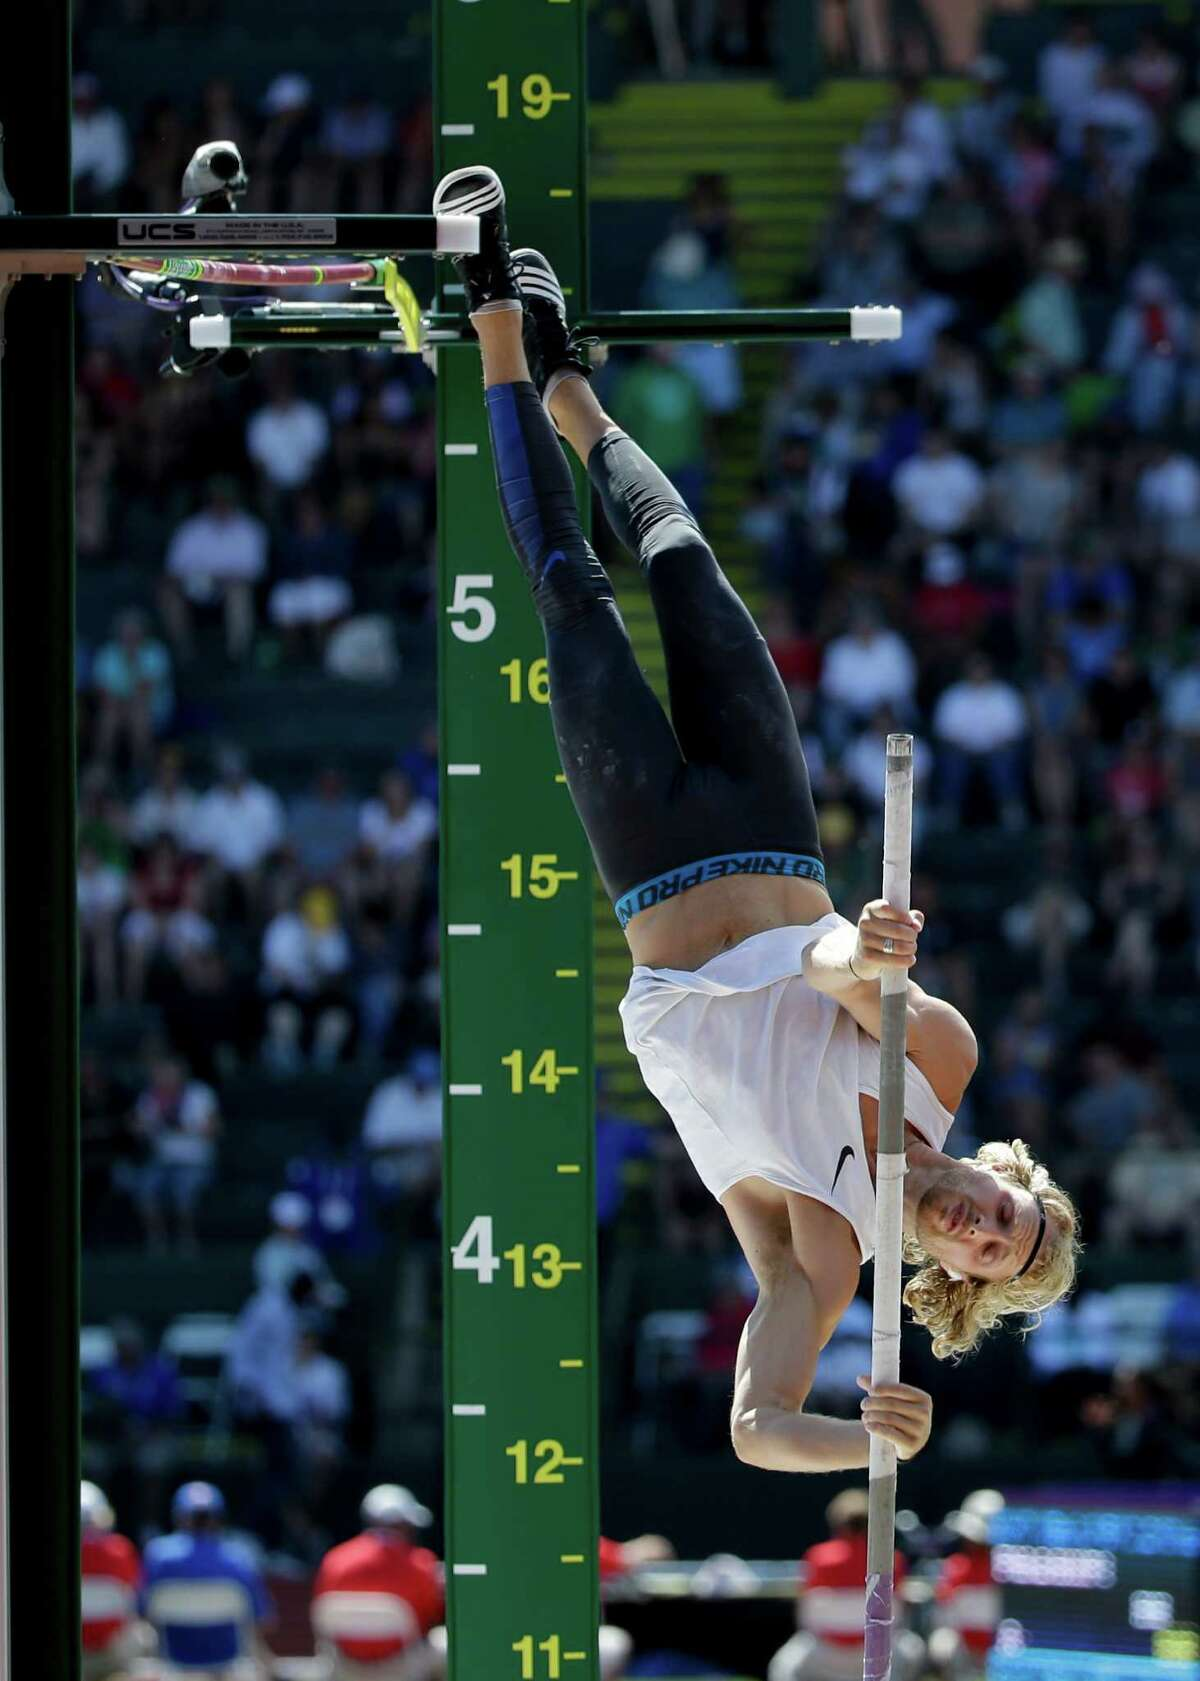 Logan Cunningham competes during the men?'s pole vault event at the U.S. Olympic Track and Field Trials, Monday, July 4, 2016, in Eugene Ore. (AP Photo/Marcio Jose Sanchez)